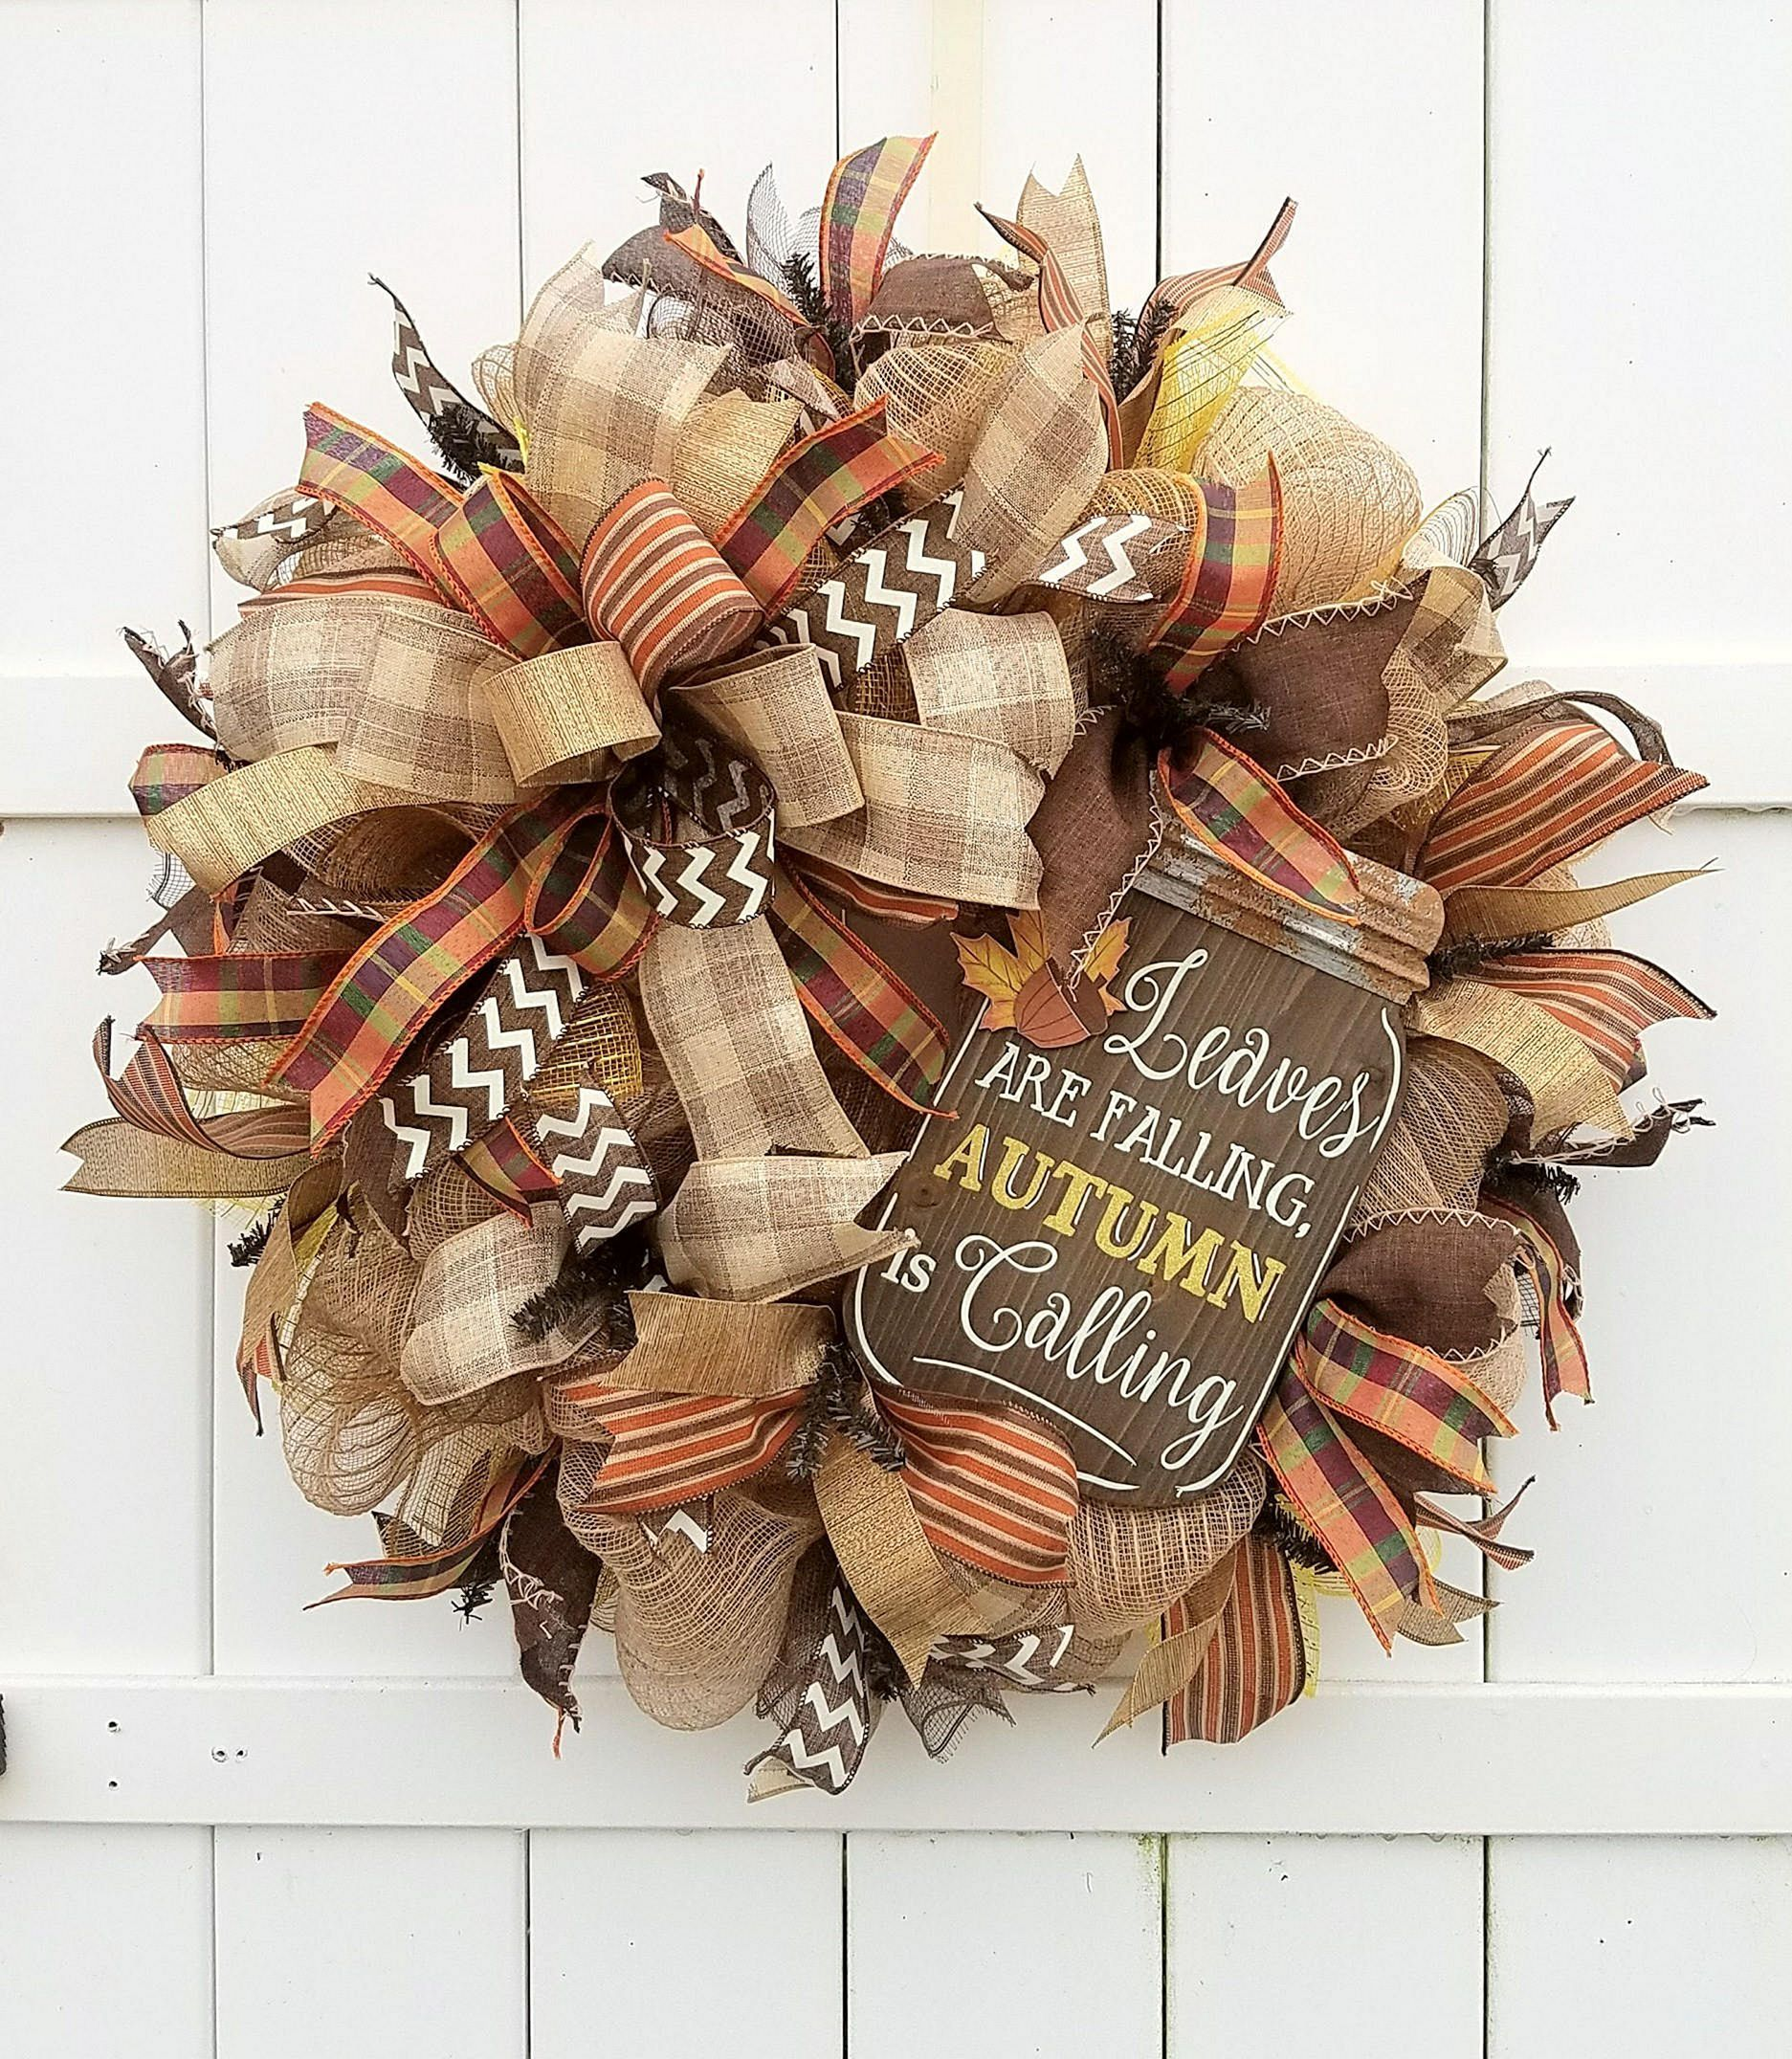 12 Easy Diy Deco Mesh Wreaths For Fall: Best Ideas To Create Fall Wreaths Diy: Top 30 Handy